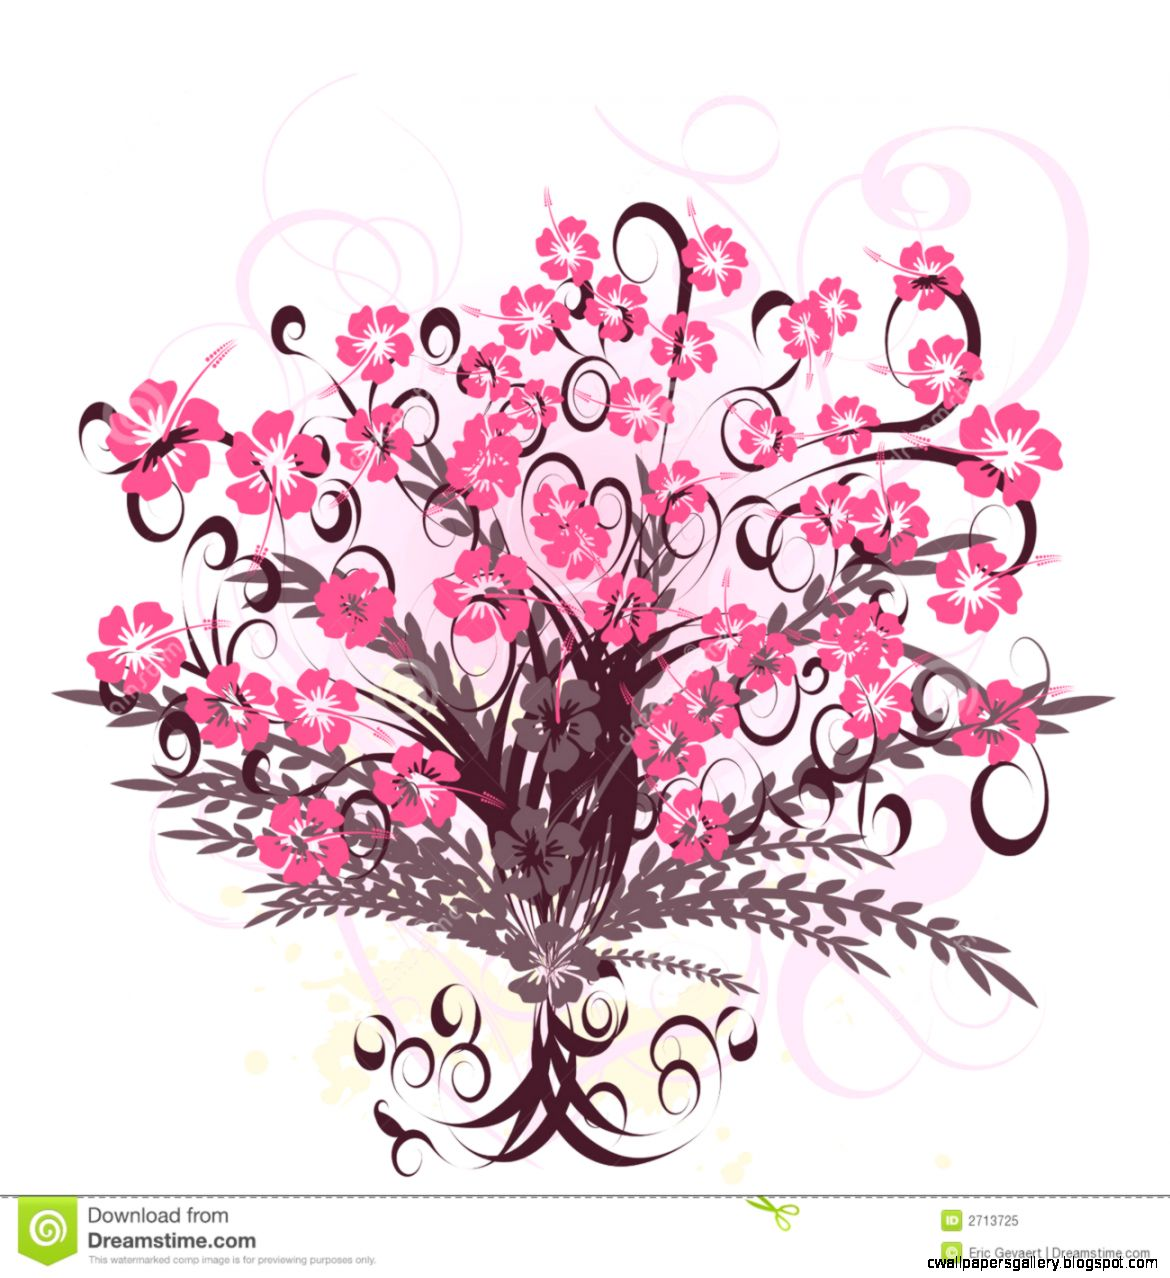 Beautiful Vector Flower Design Stock Photos   Image 2713753